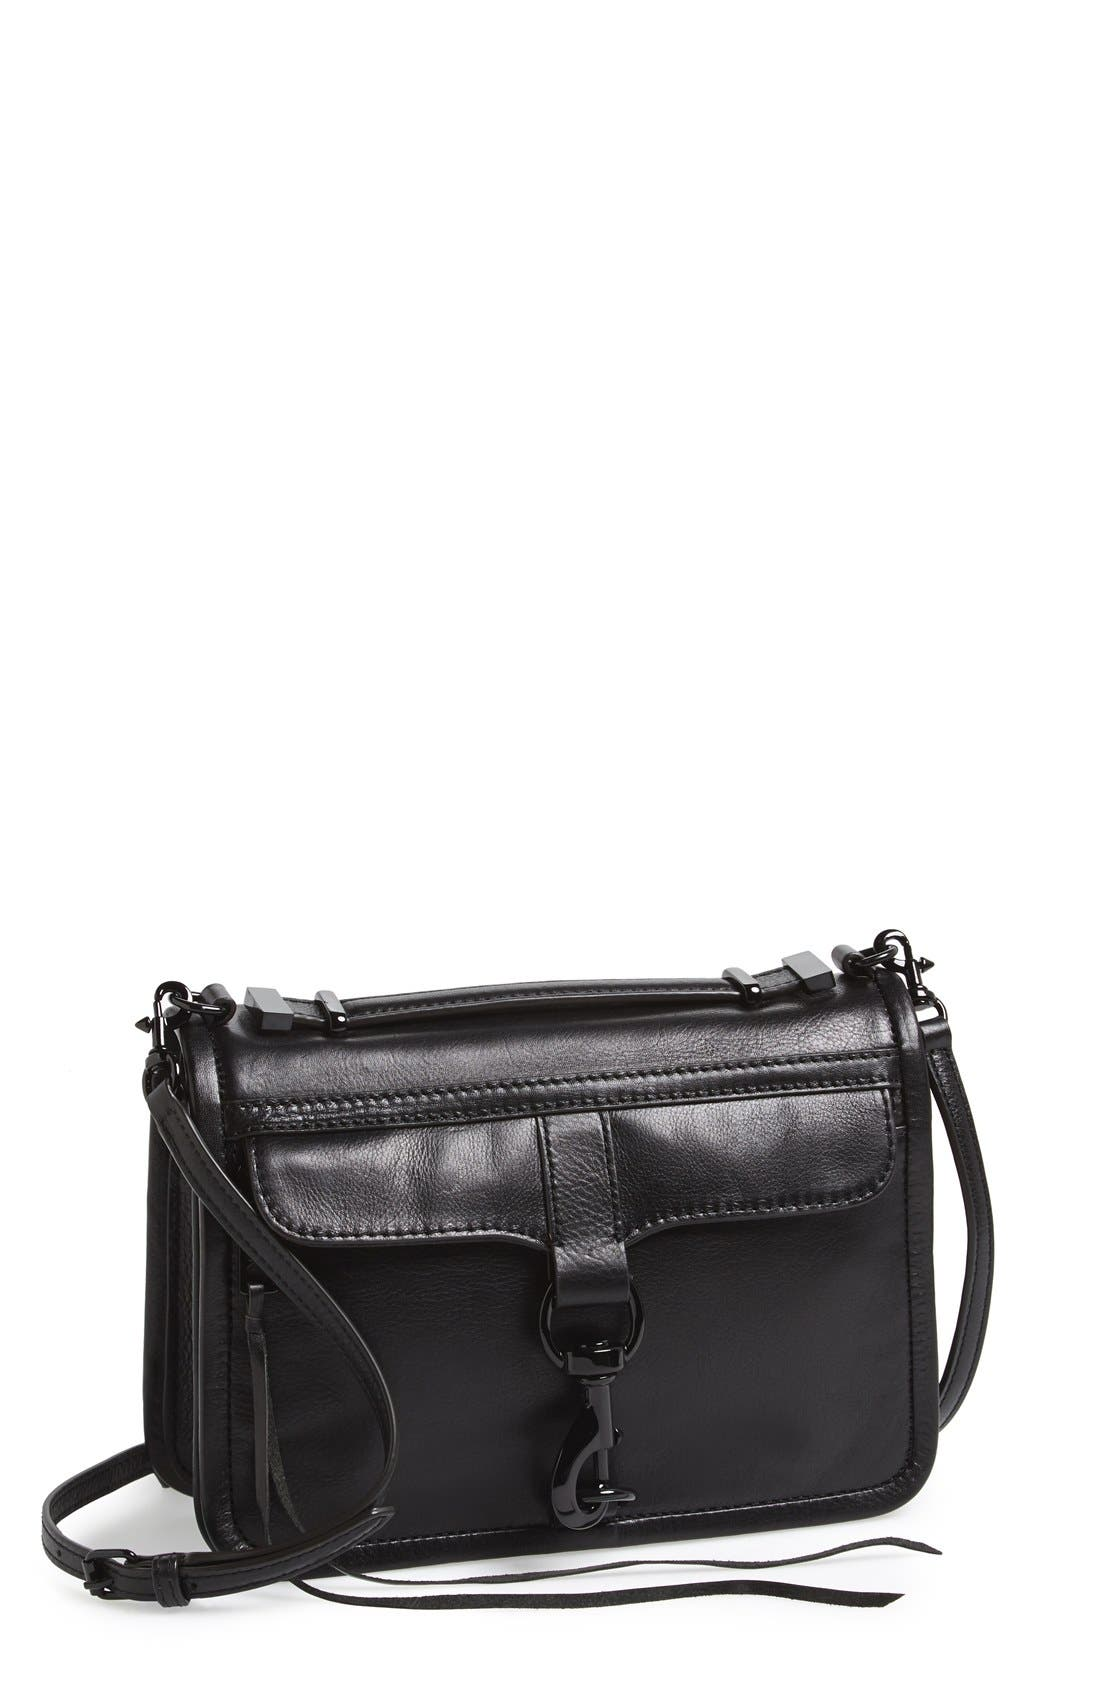 Alternate Image 1 Selected - Rebecca Minkoff 'Bowery' Crossbody Bag